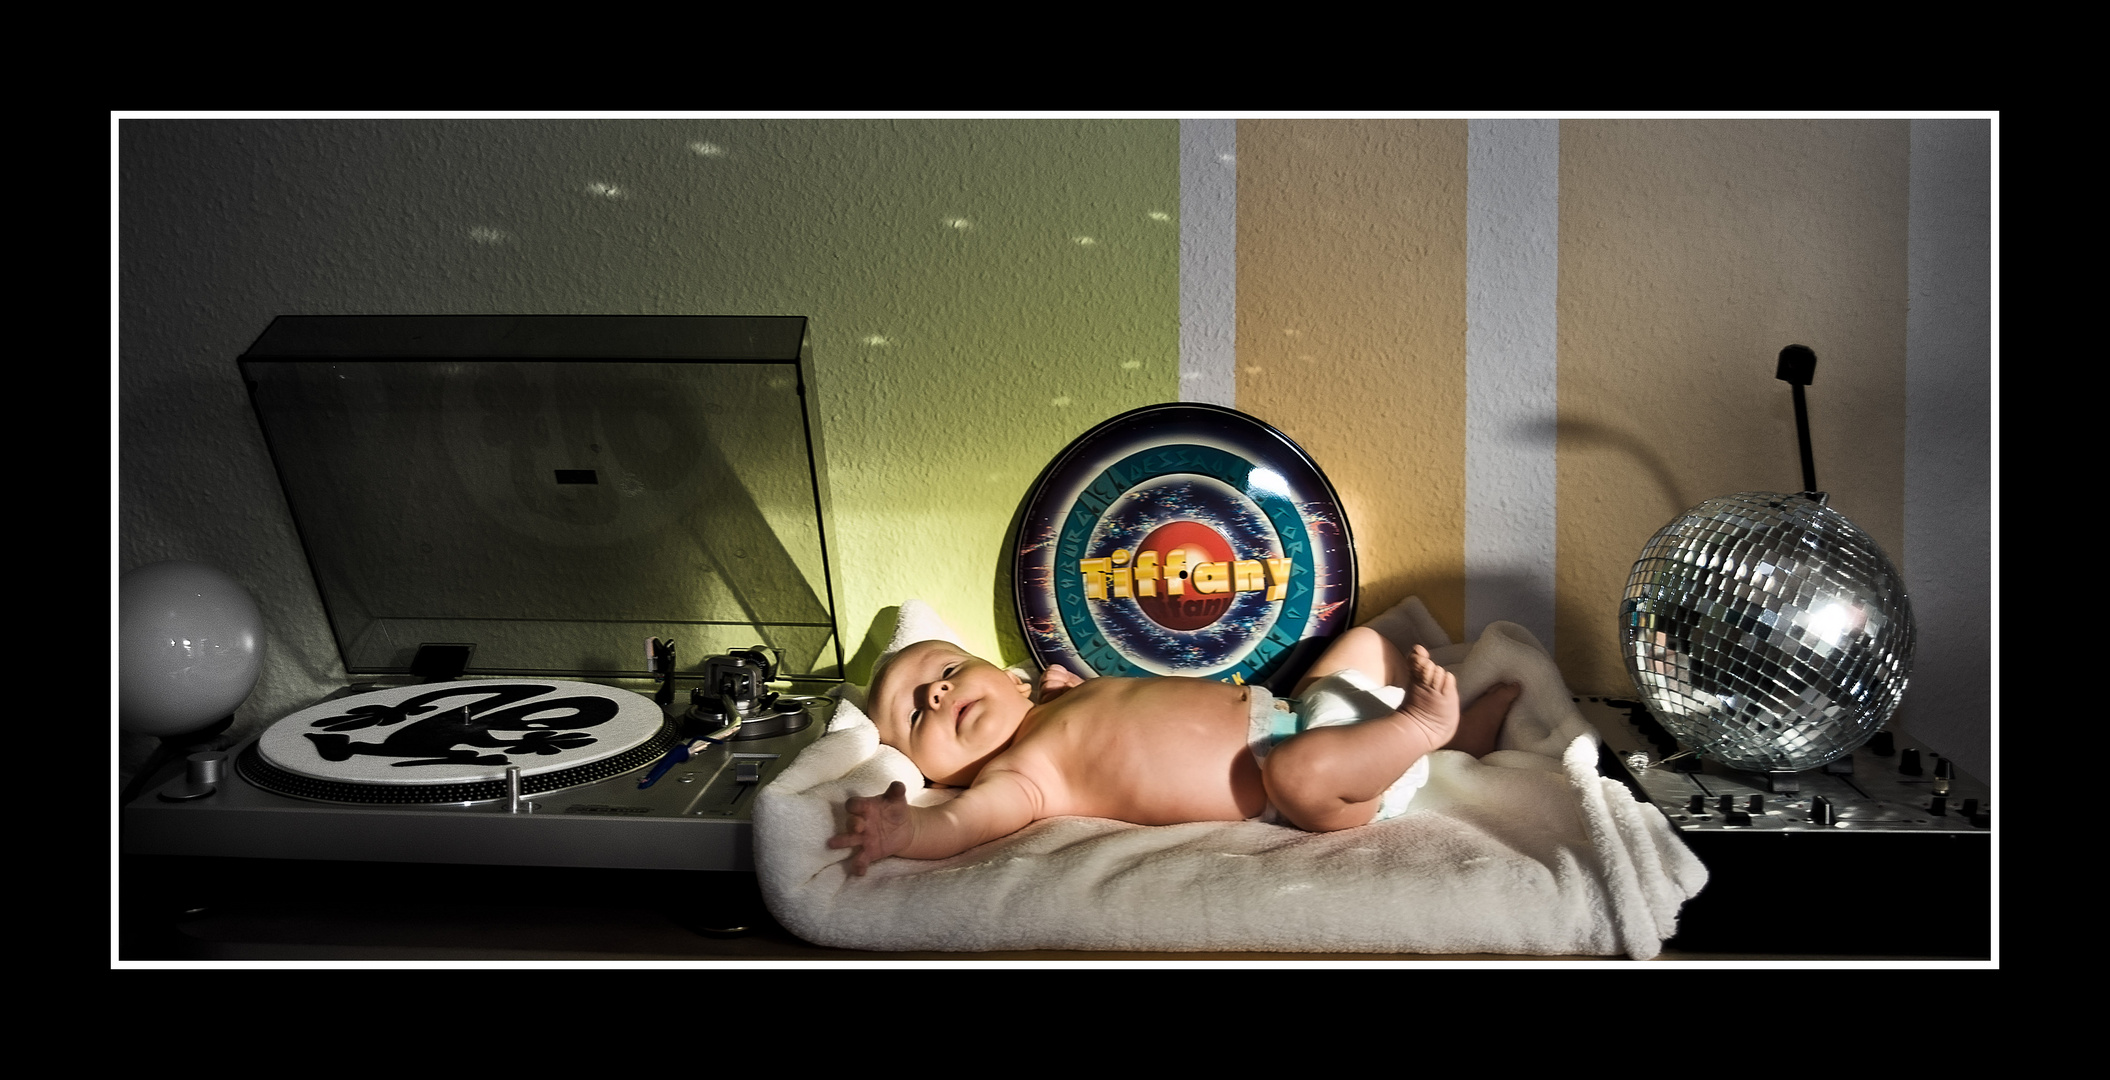 The youngest DJ of the world...